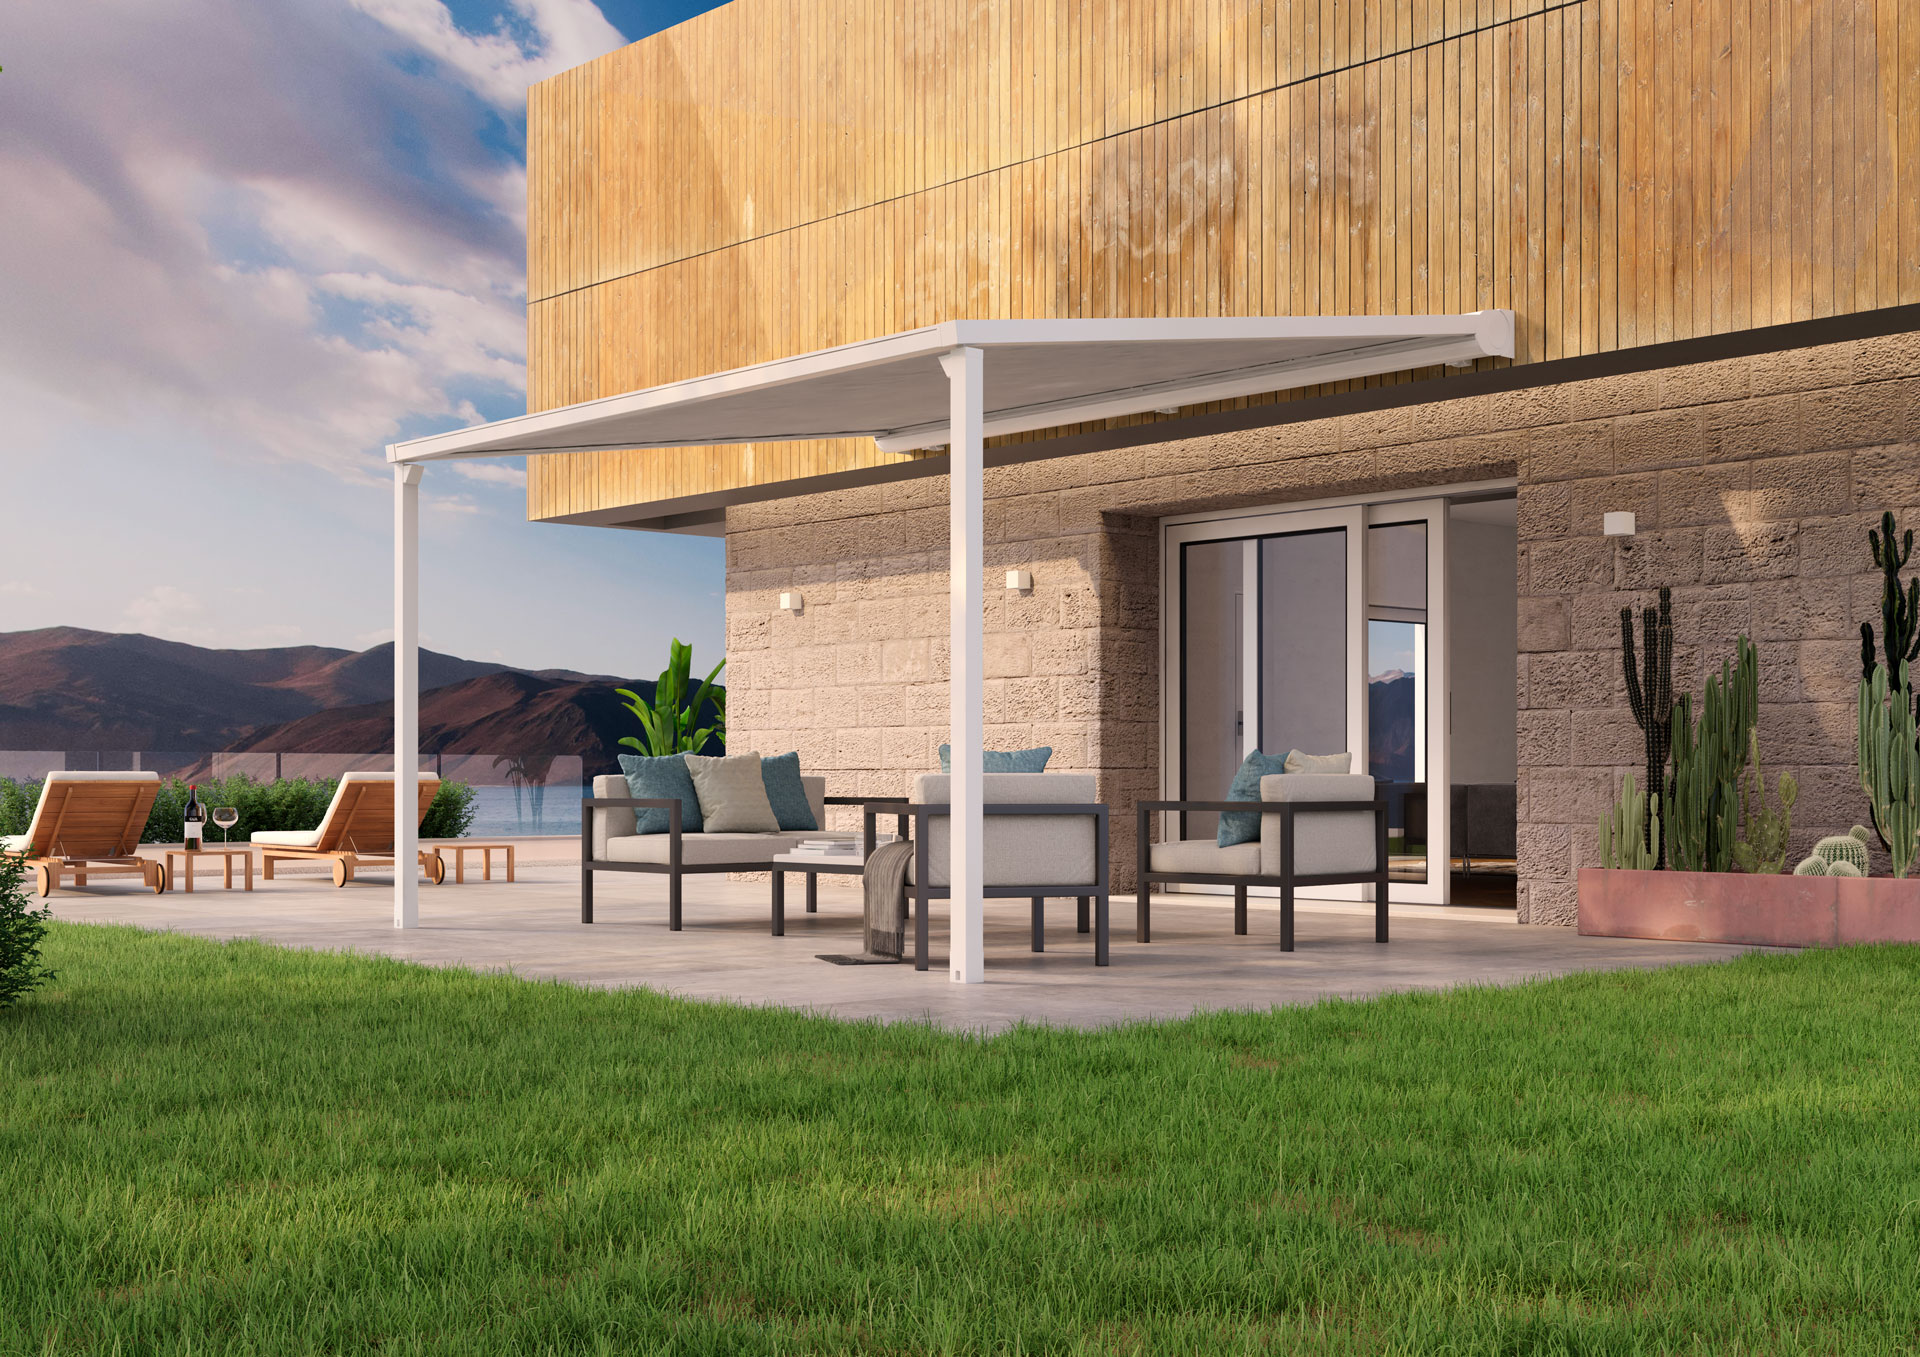 BAT introduces SIRIO, the brand-new minimal pergola awning with zip guide rail and folded cloth